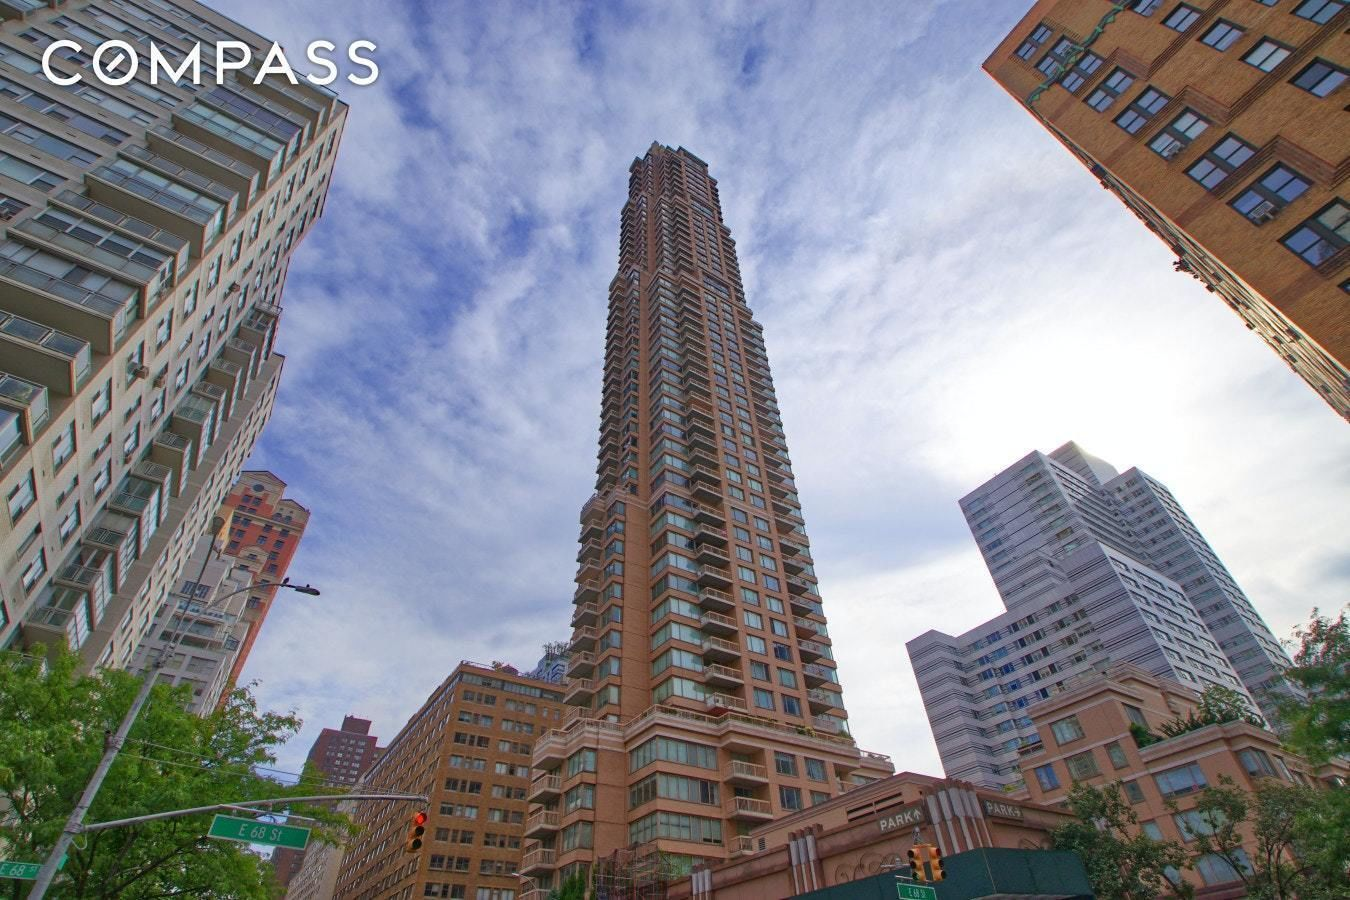 Apartment for sale at 200 East 69th Street, Apt 5-H